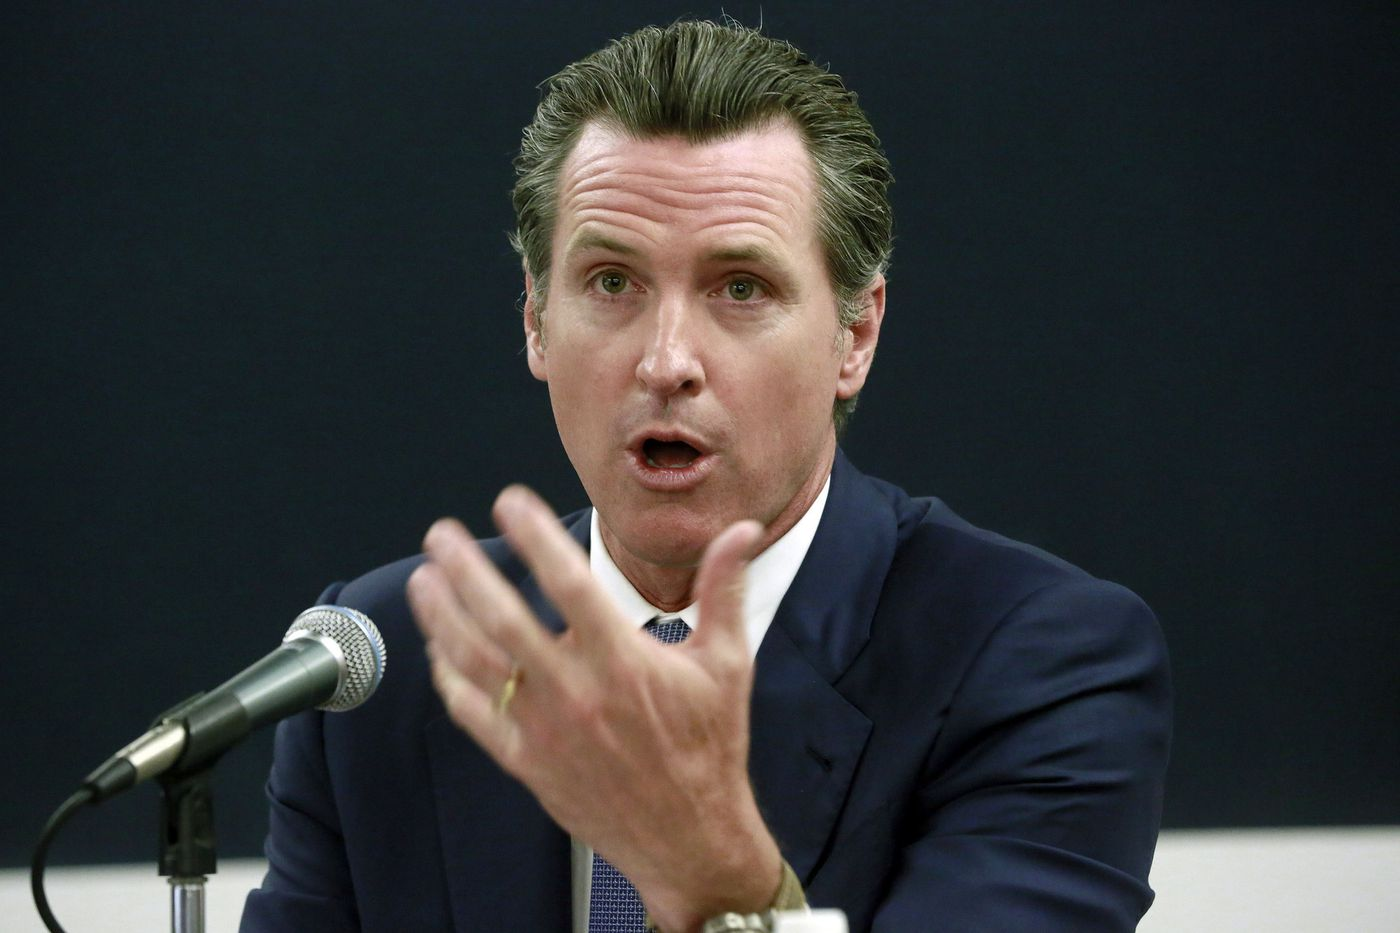 CA Gubernatorial Candidate Gavin Newsom Must Step Down Over Sexual Misconduct Allegations